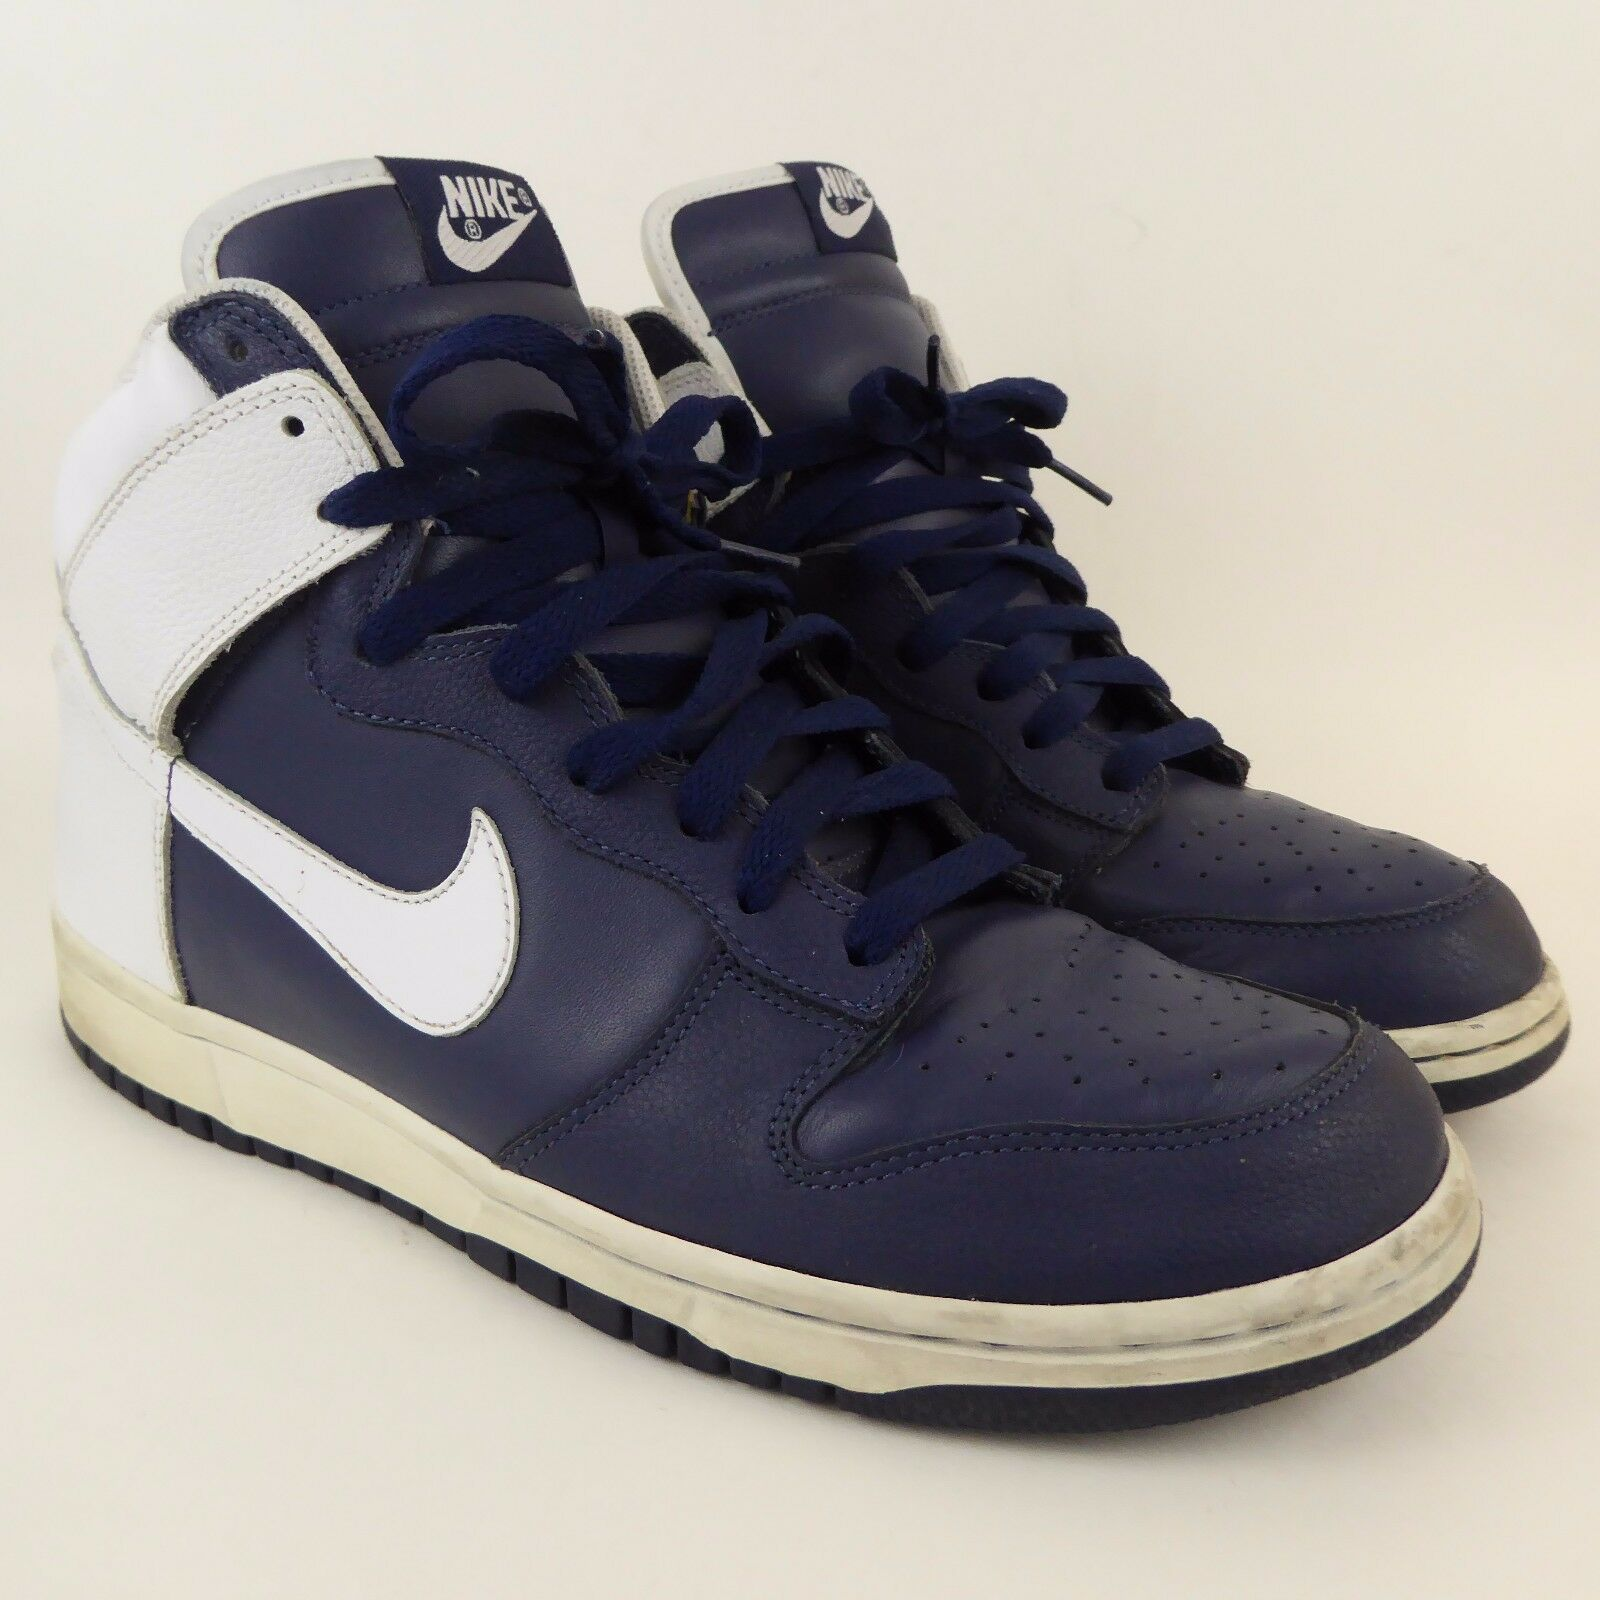 Nike Dunk High 2018 309432-411 Midnight Navy Blue and White Size 10.5